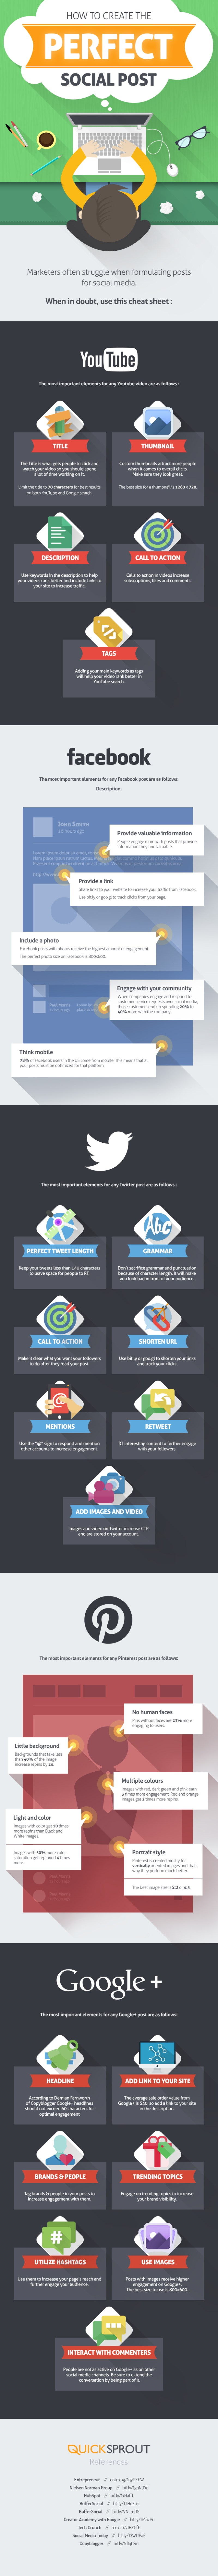 Perfect Social Media Posts [INFOGRAPHIC]